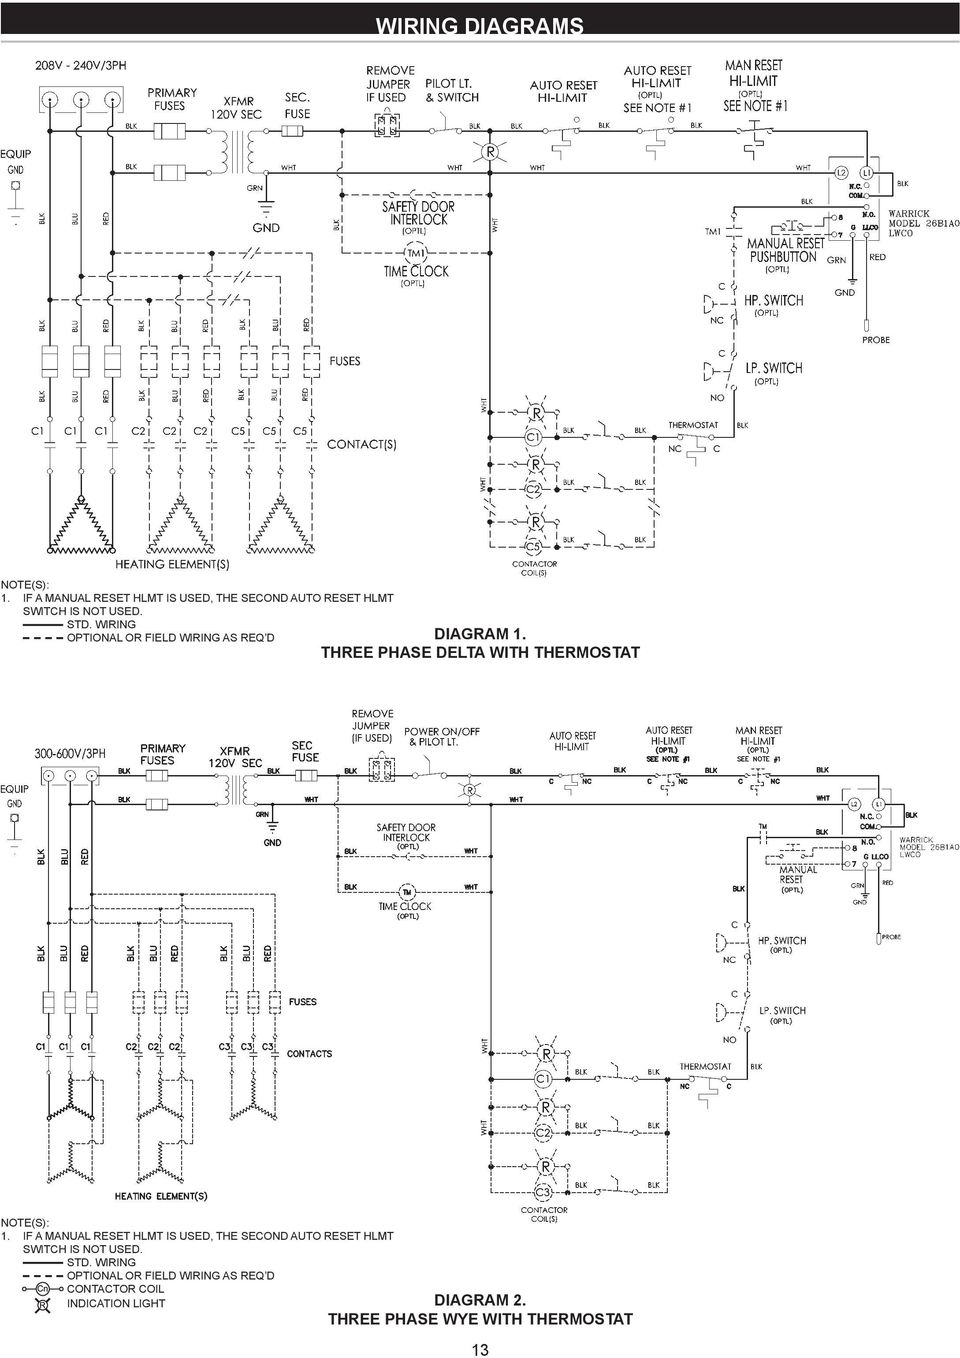 medium resolution of wiring optional or field wiring as req d diagram three phase delta with thermostat note